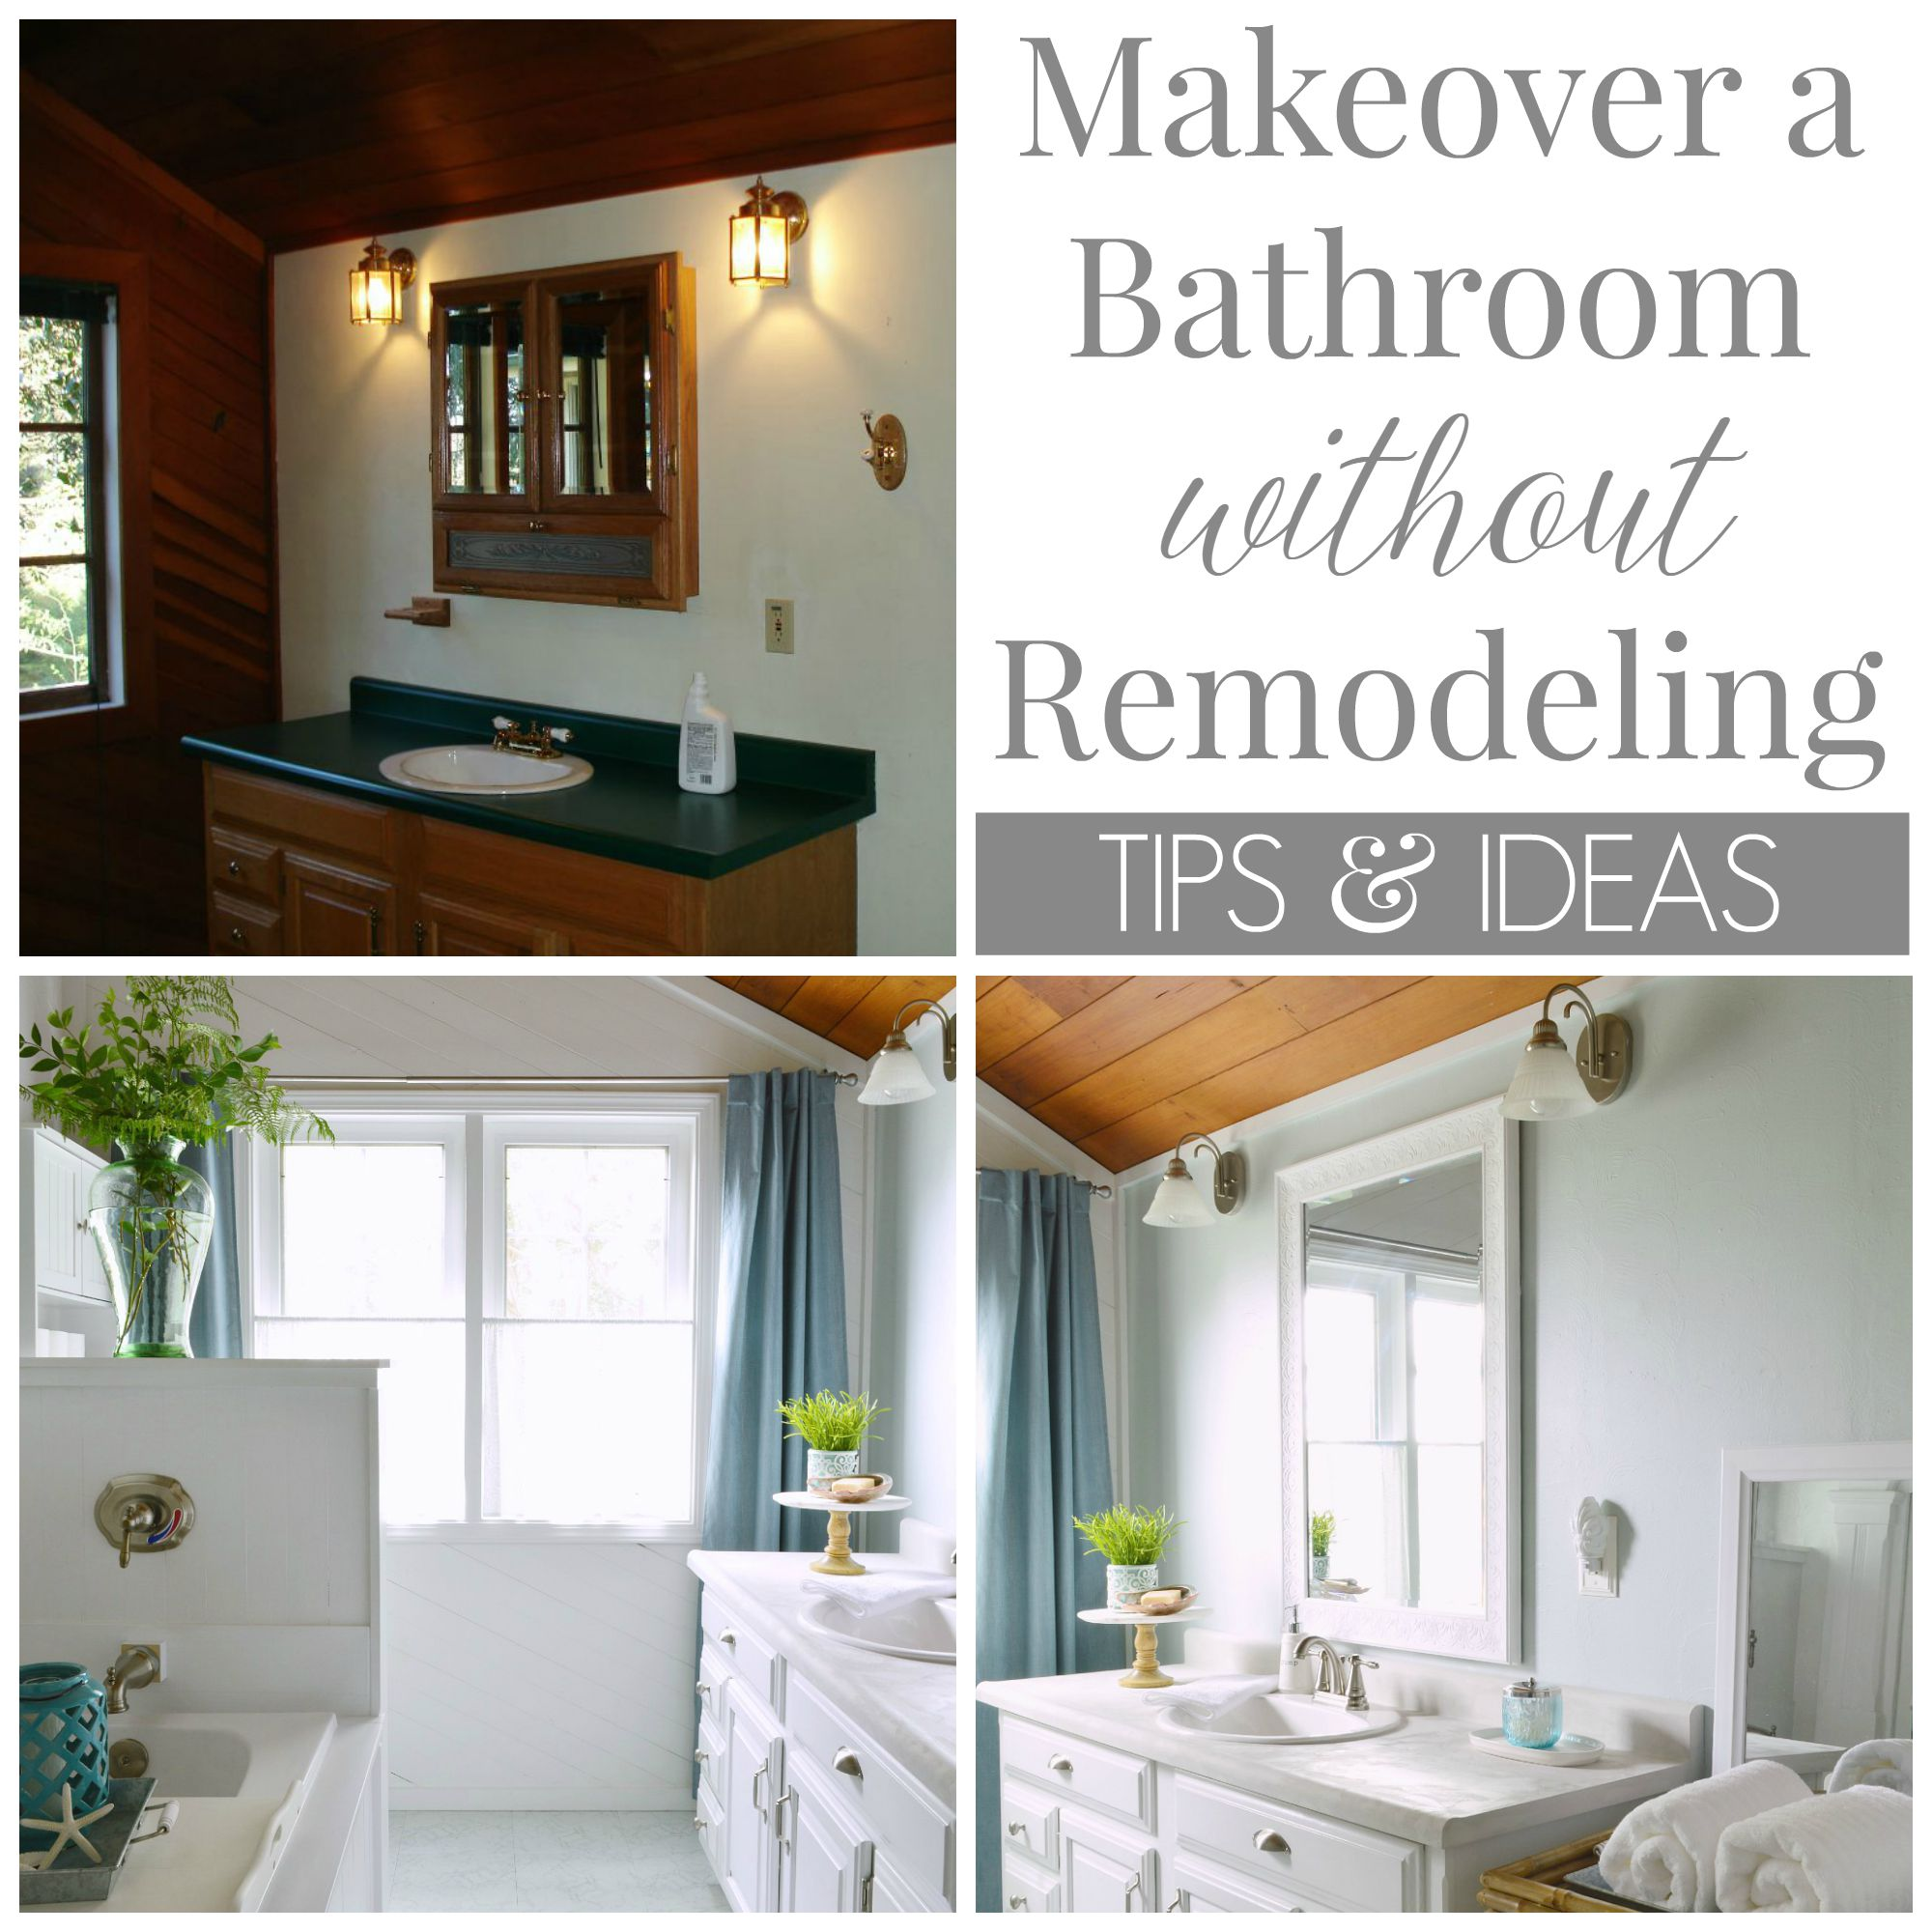 How To Makeover A Bathroom Without Remodeling - How to remodel a bathroom yourself on a budget